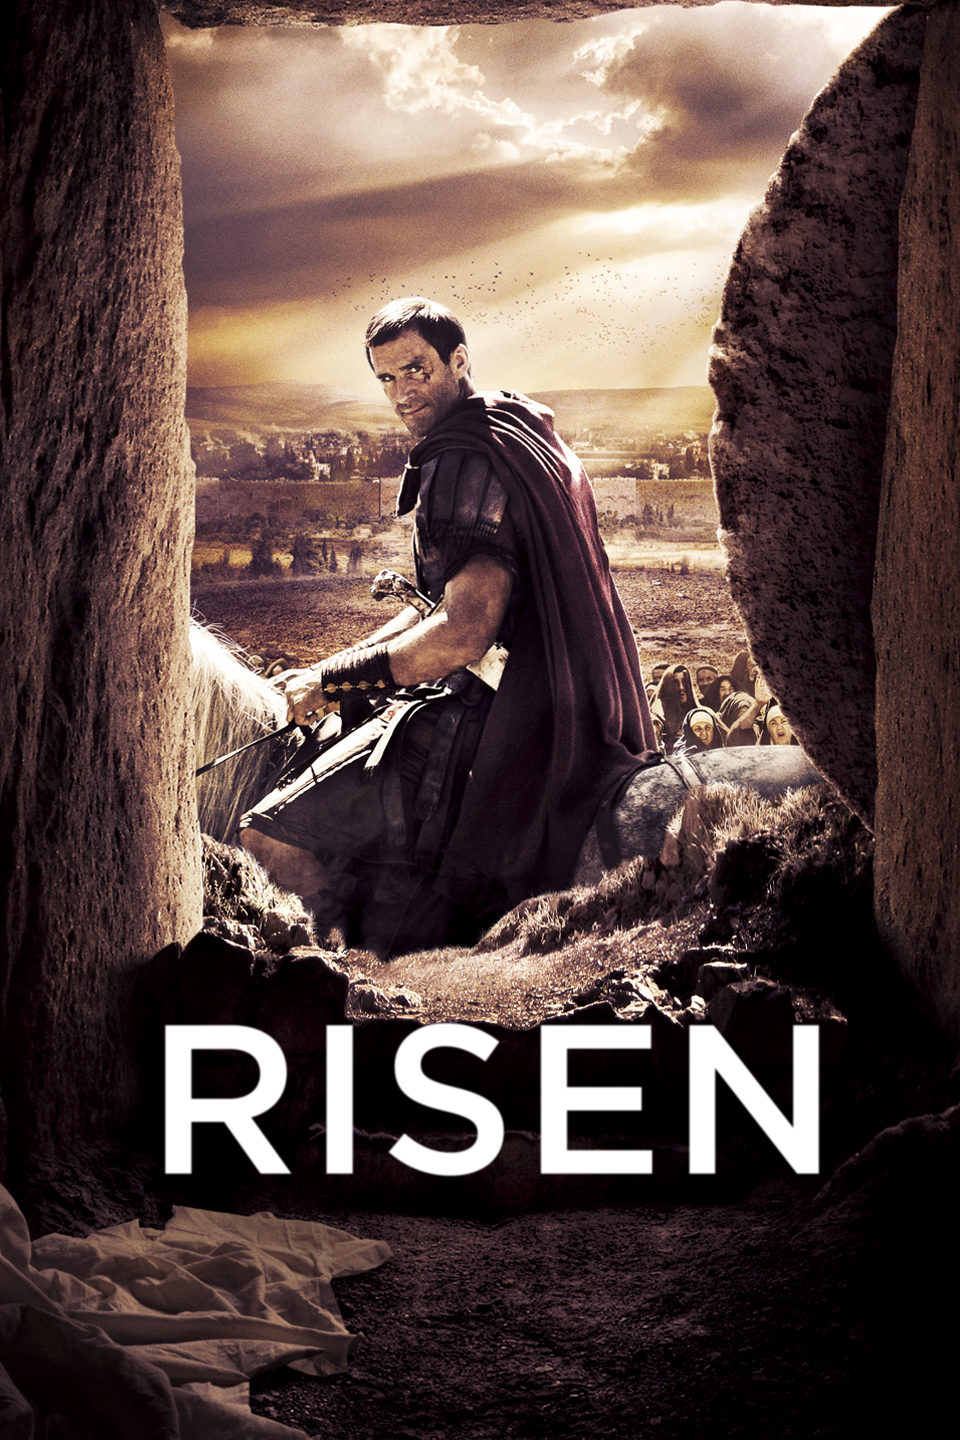 Risen-960x1440-Portrate